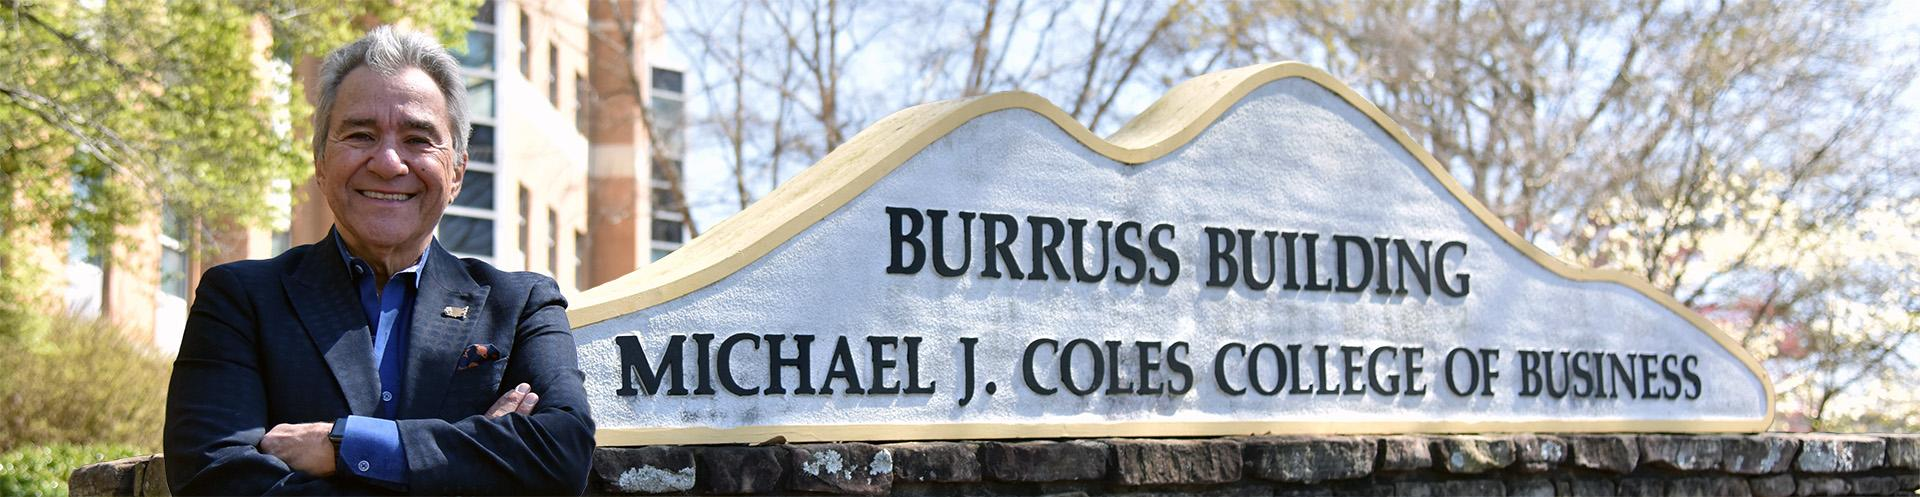 The Year of Michael J. Coles